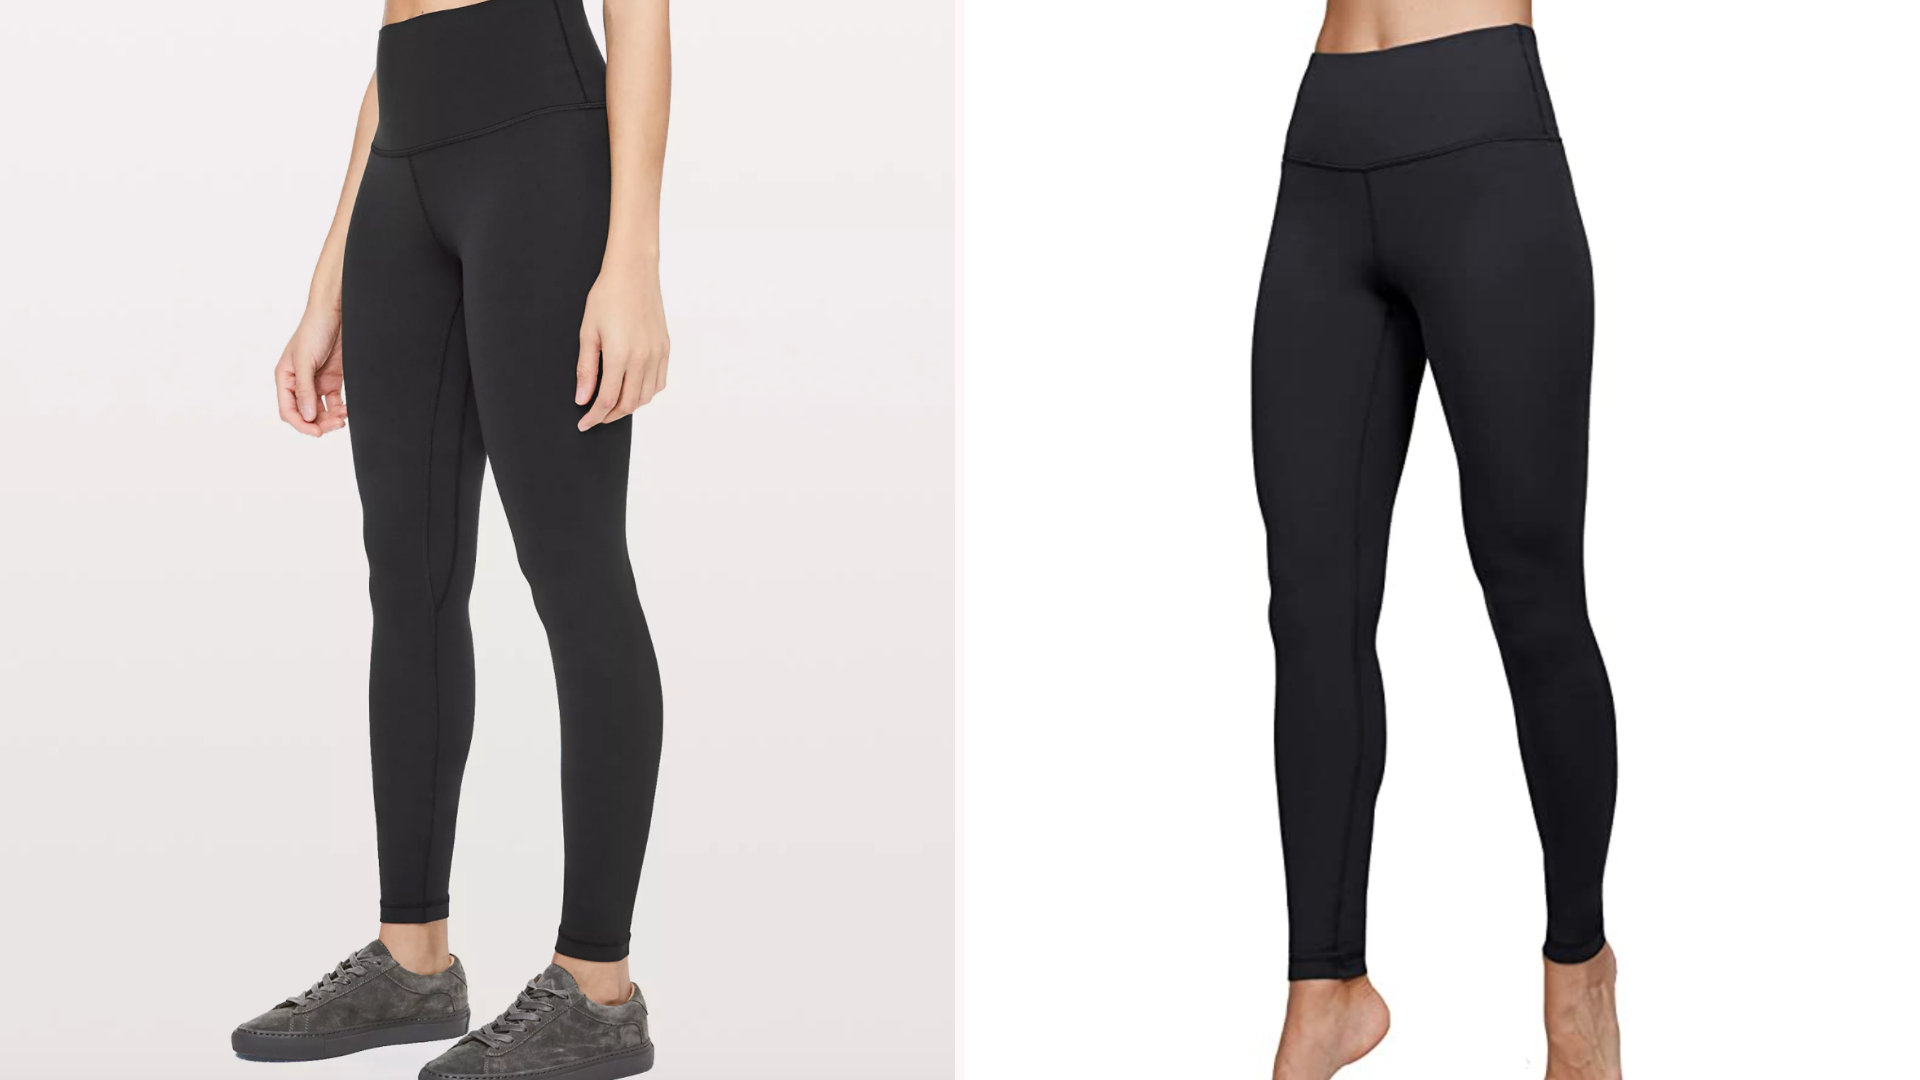 two black leggings side by side